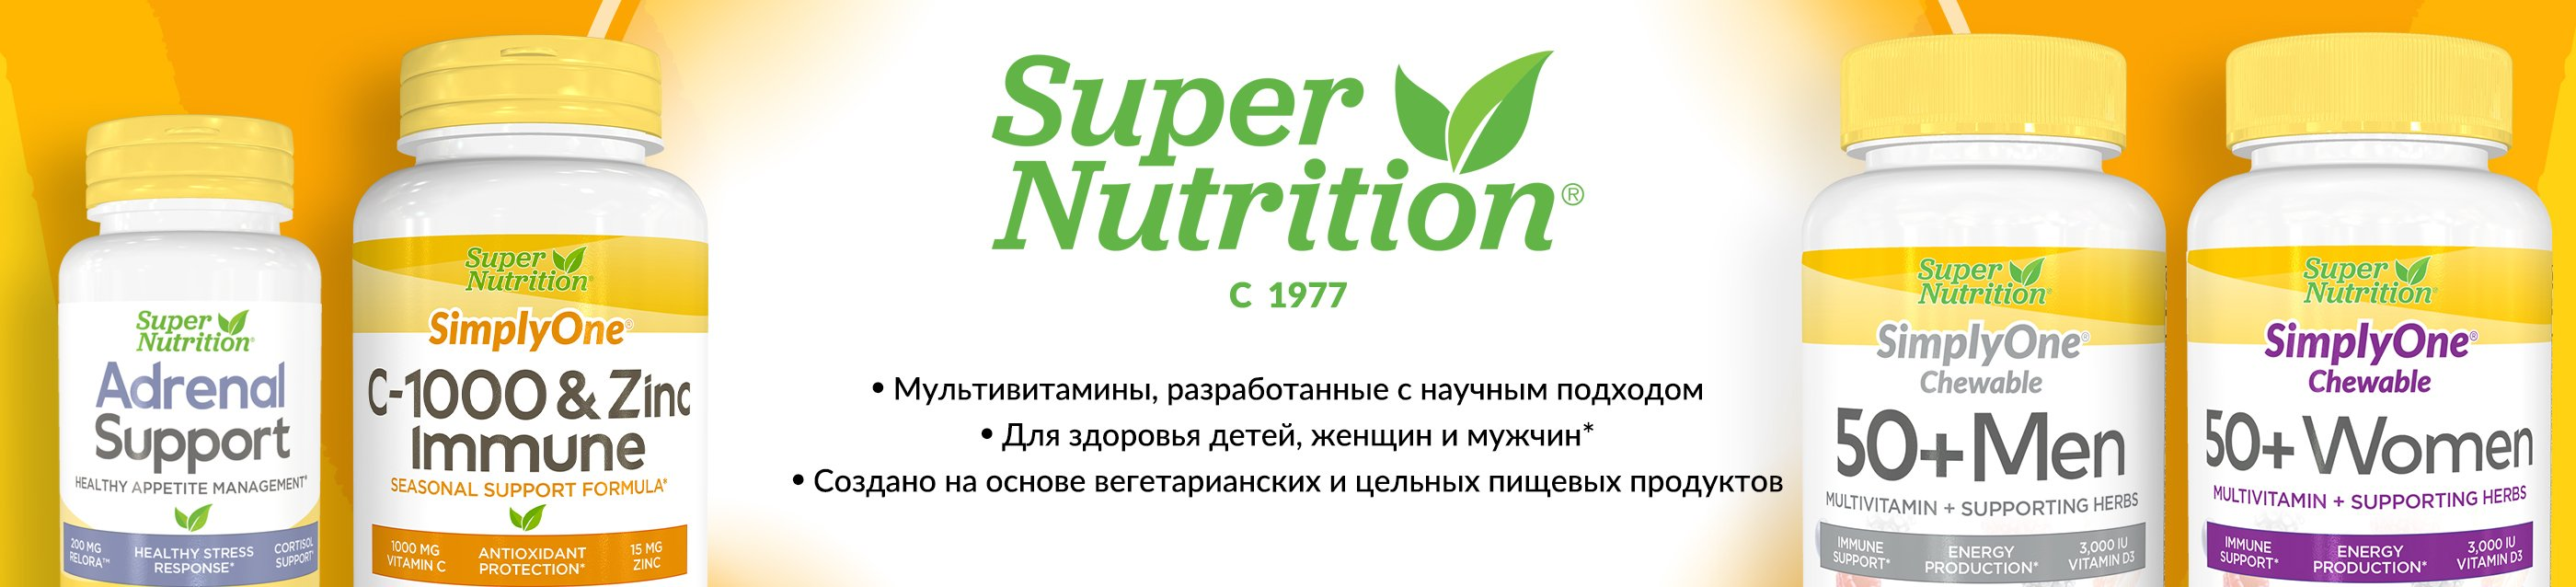 Super Nutrition main banner